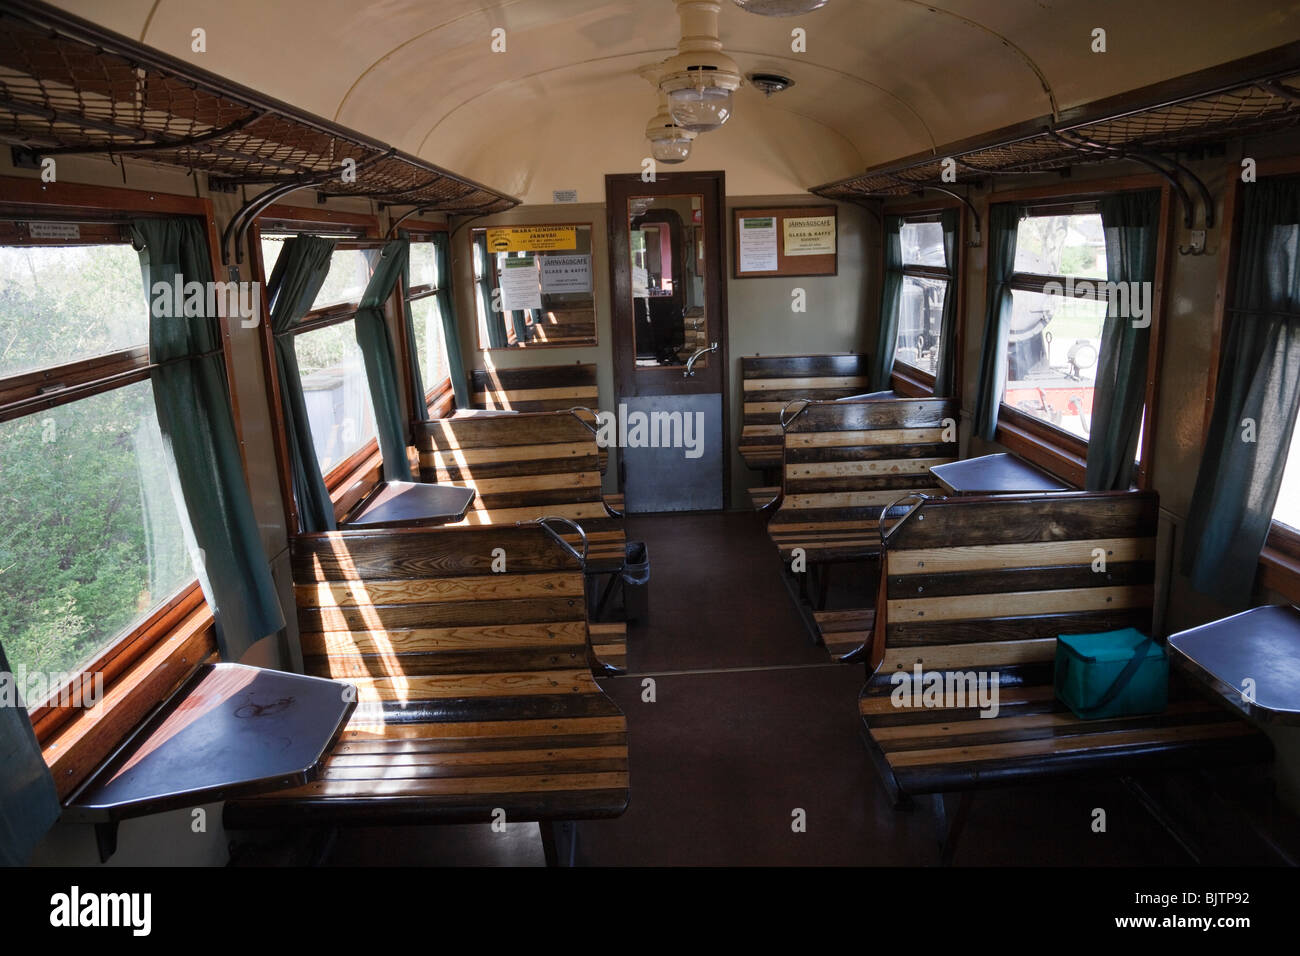 Interior Of An Old Railway Carriage With Wooden Benches